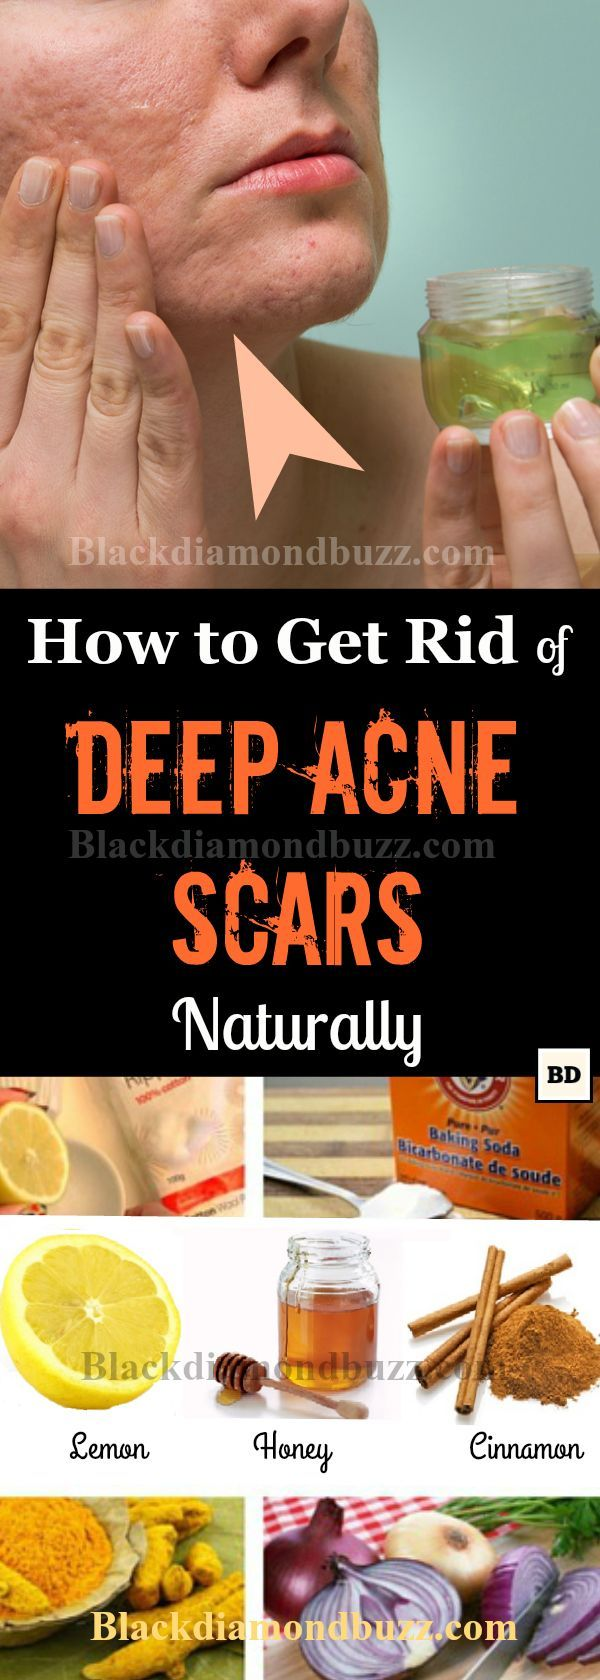 Acne scars removal : how to get rid of acne scars naturally.Easy home remedies to remove deep acne scars